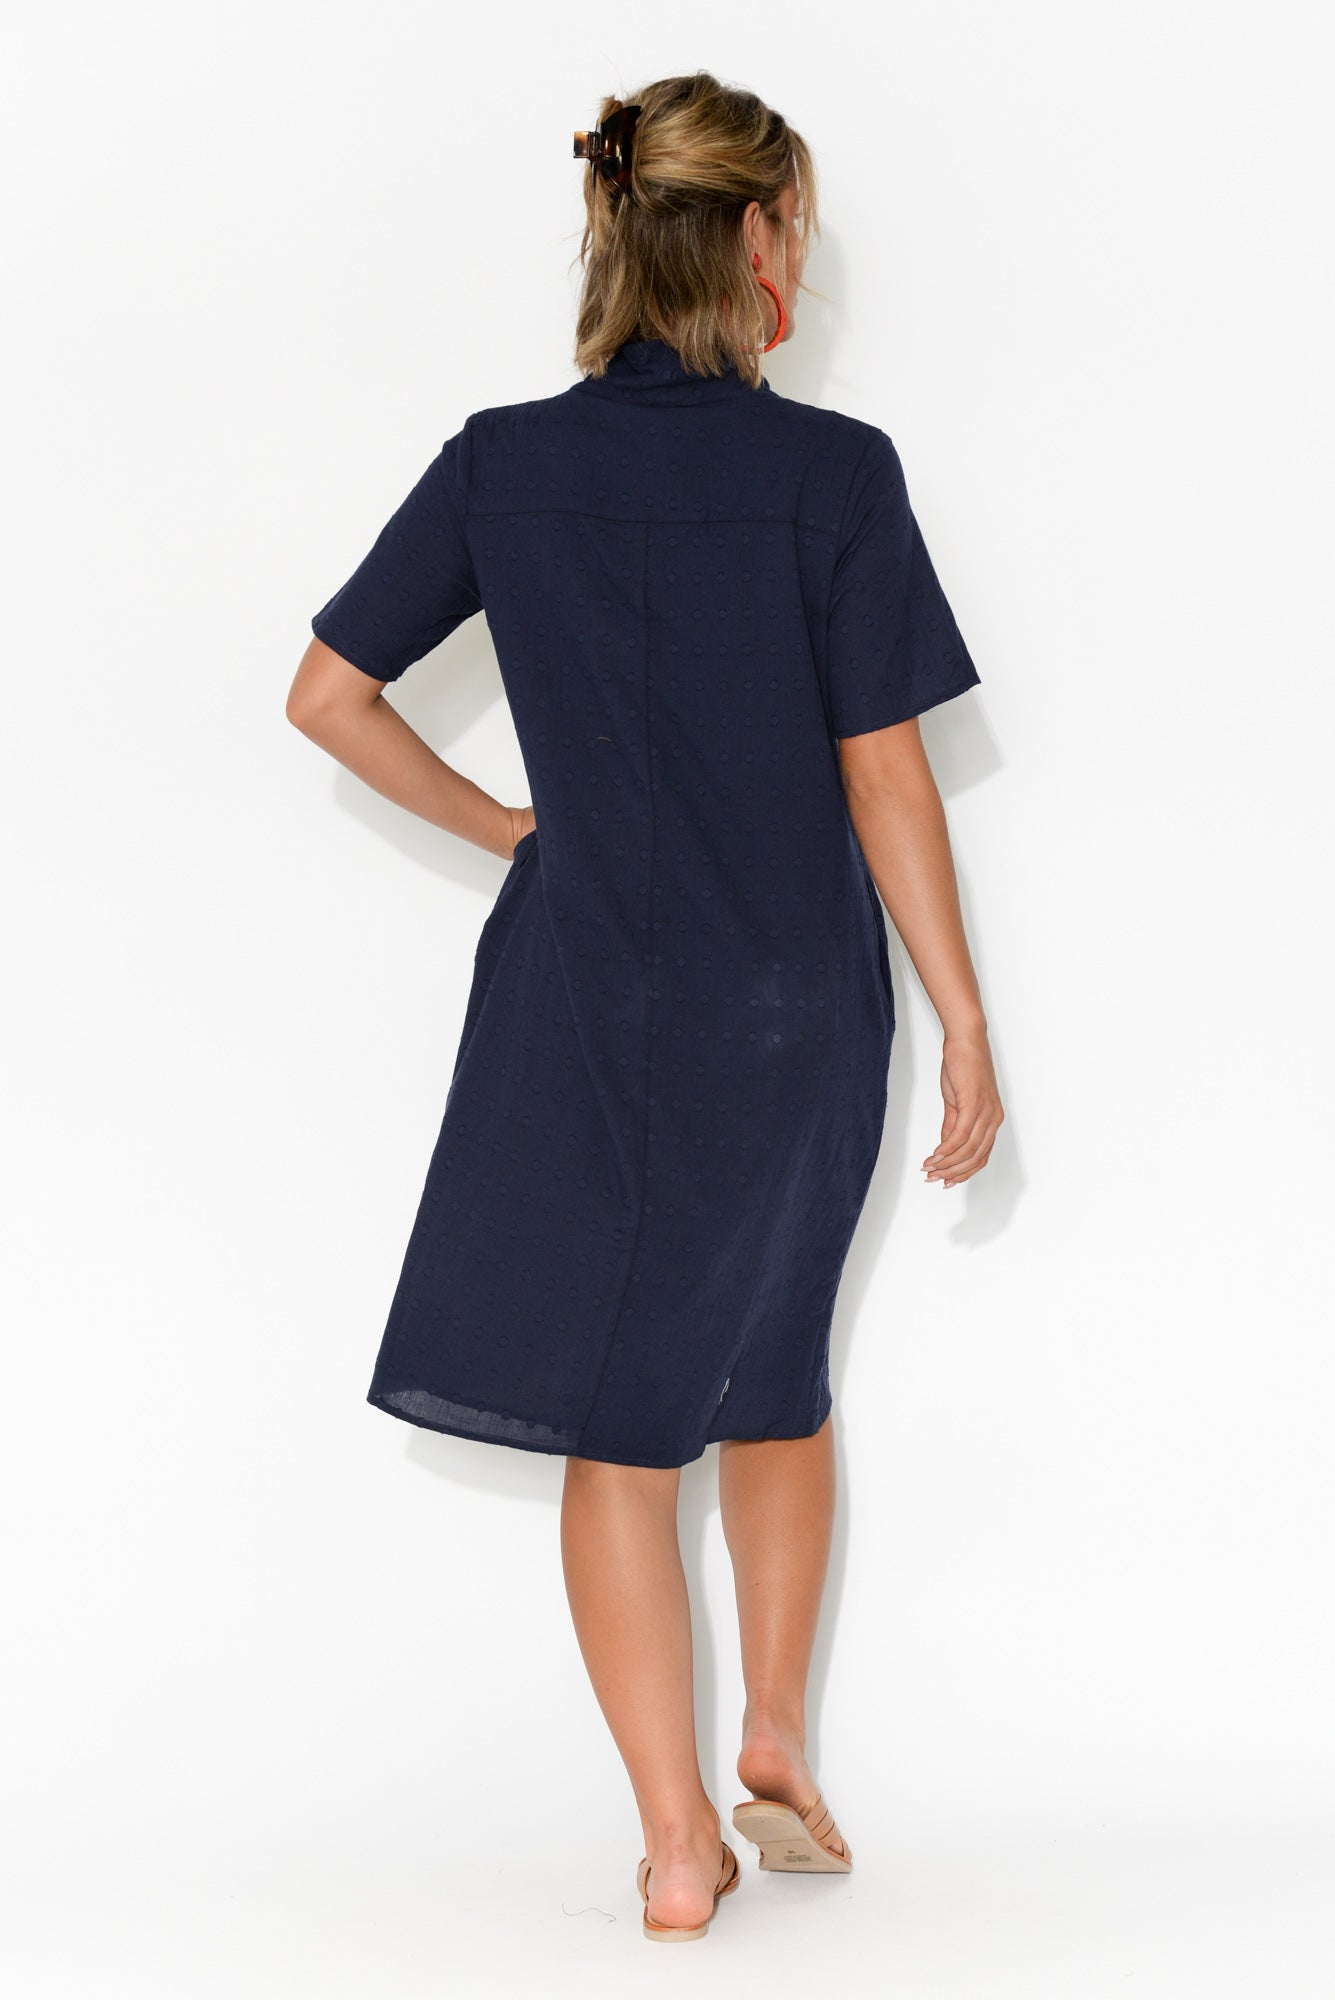 Atara Navy Cotton Cowl Neck Dress